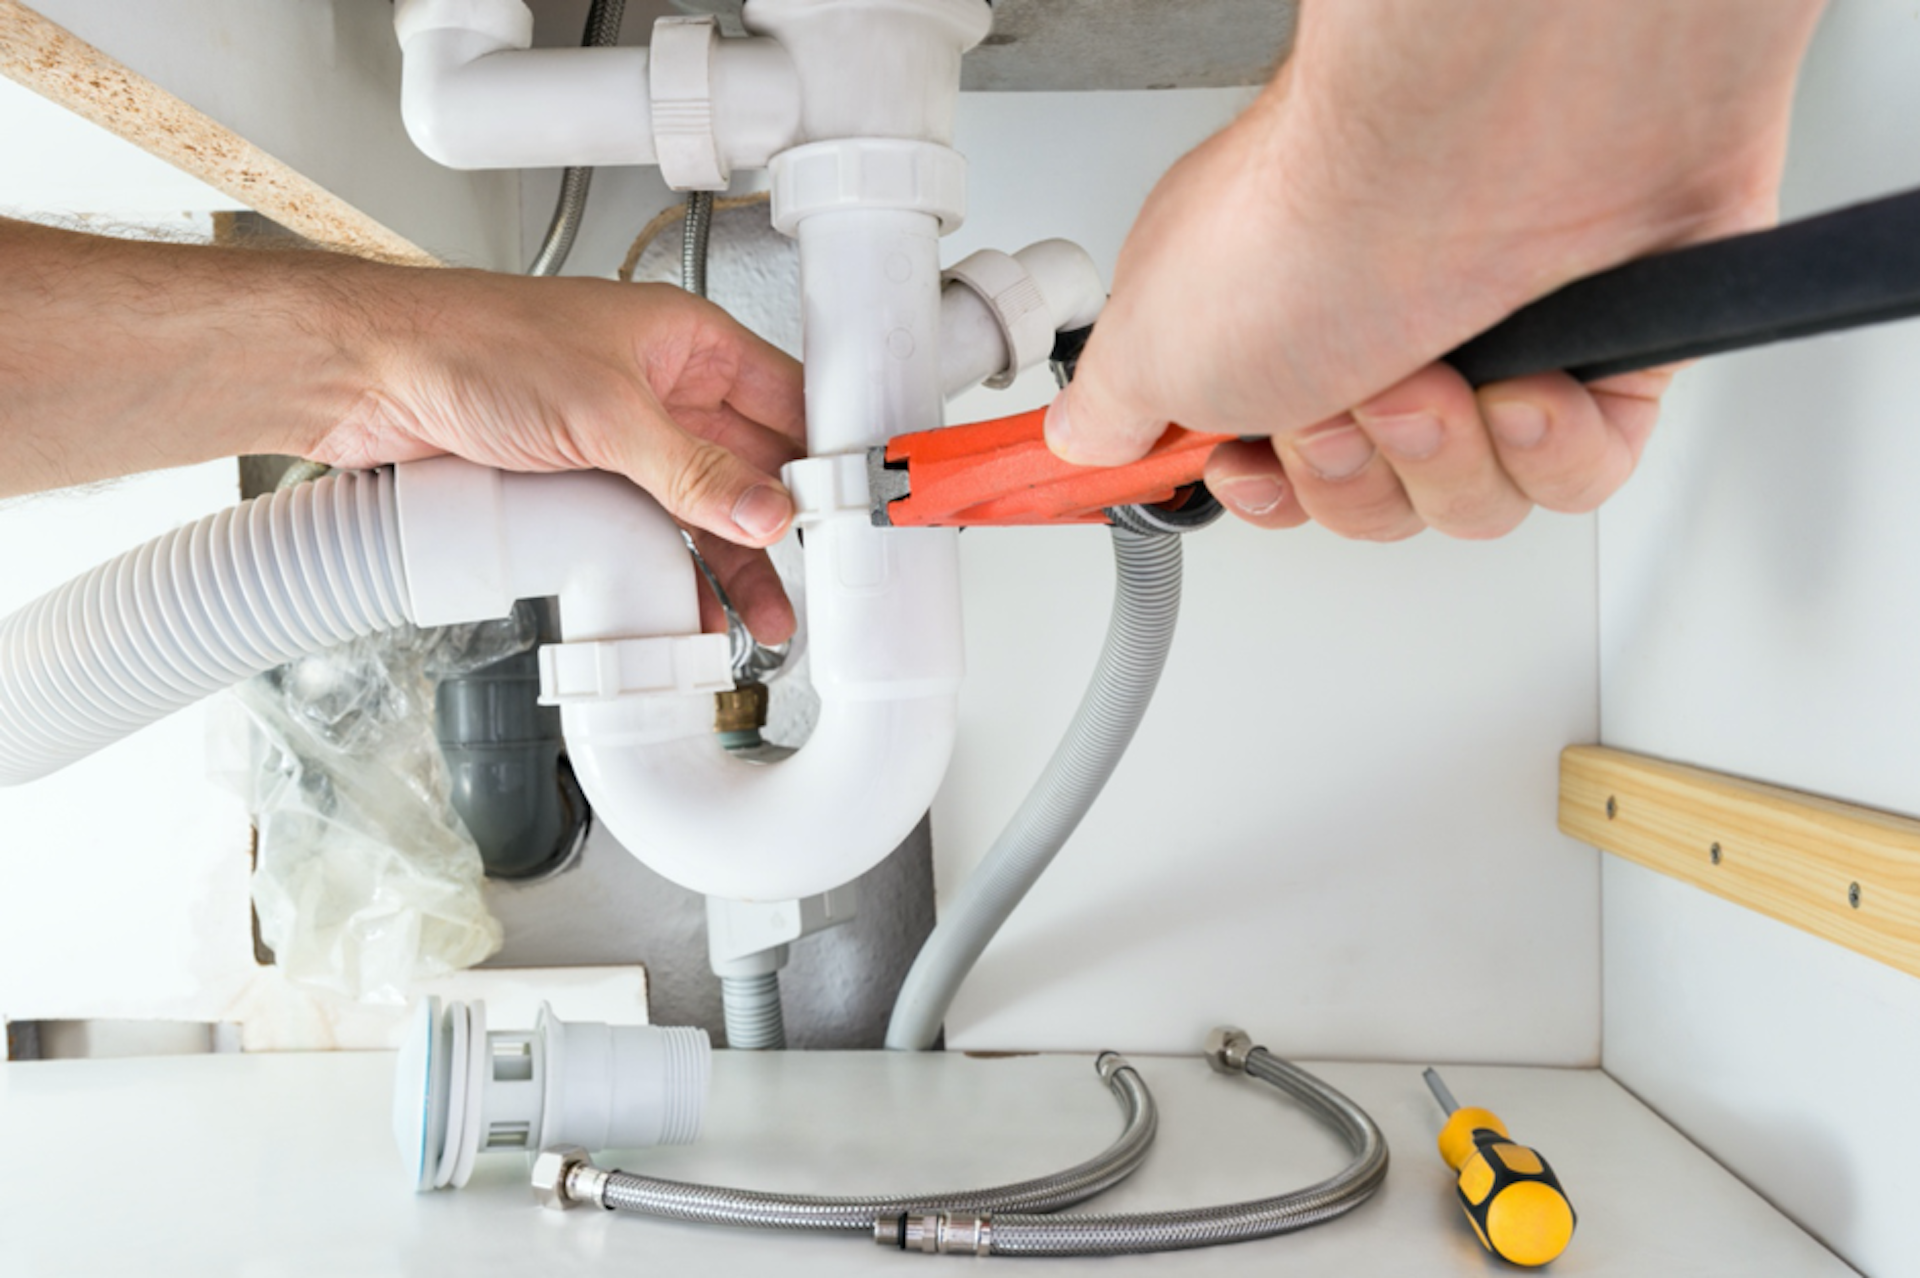 Save money with a few simple plumbing tips